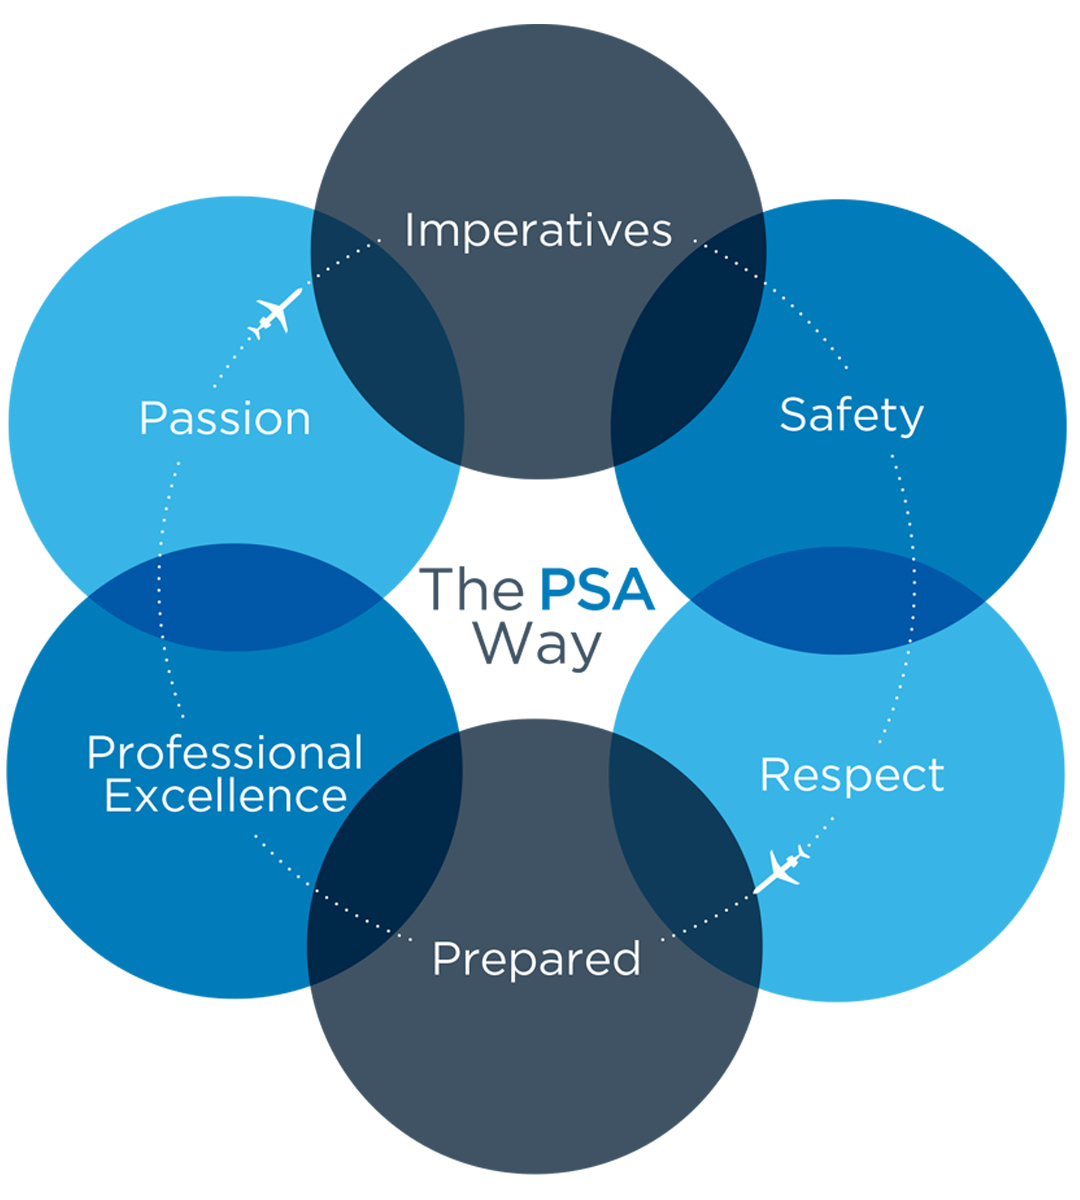 The PSA Way - PSA's Core Values are Safety, Respect, Prepared, Professional Excellence, Passion, and Imperatives